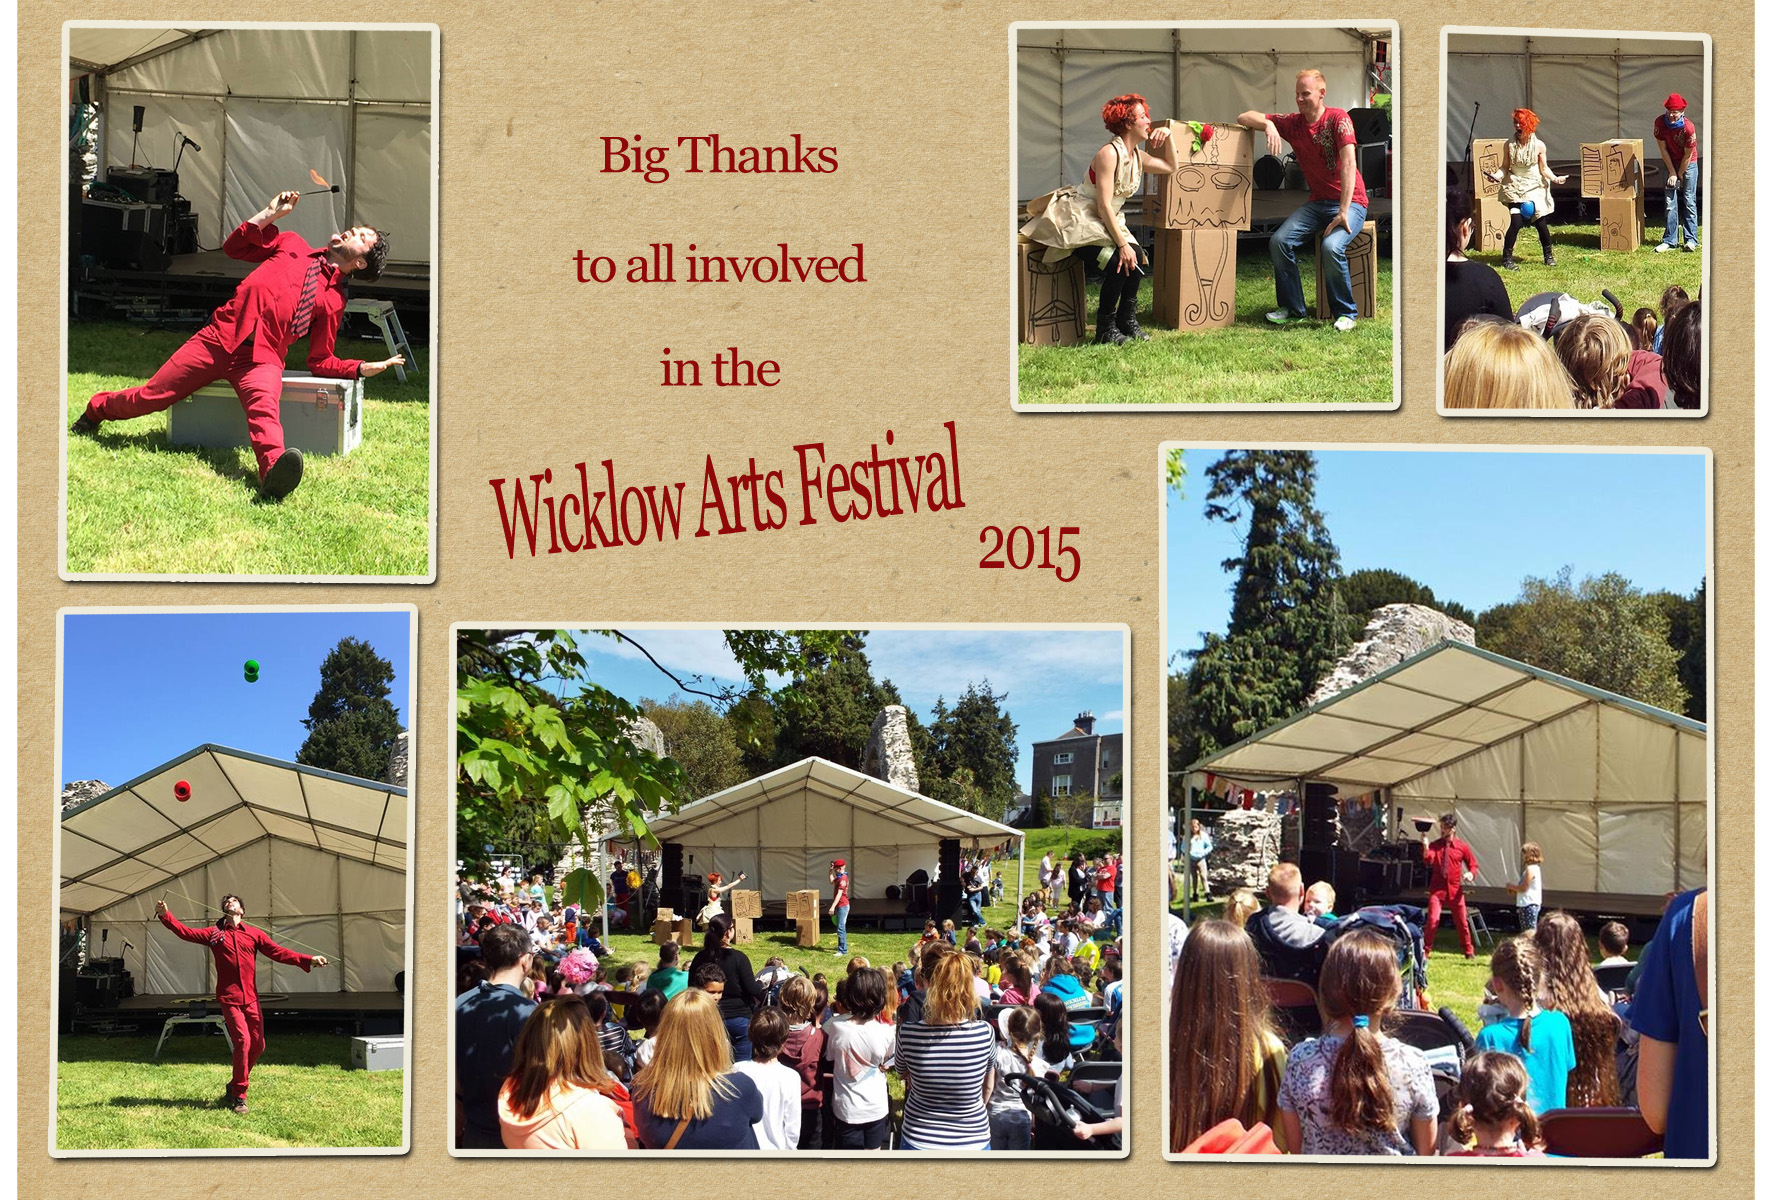 Wicklow Arts Festival